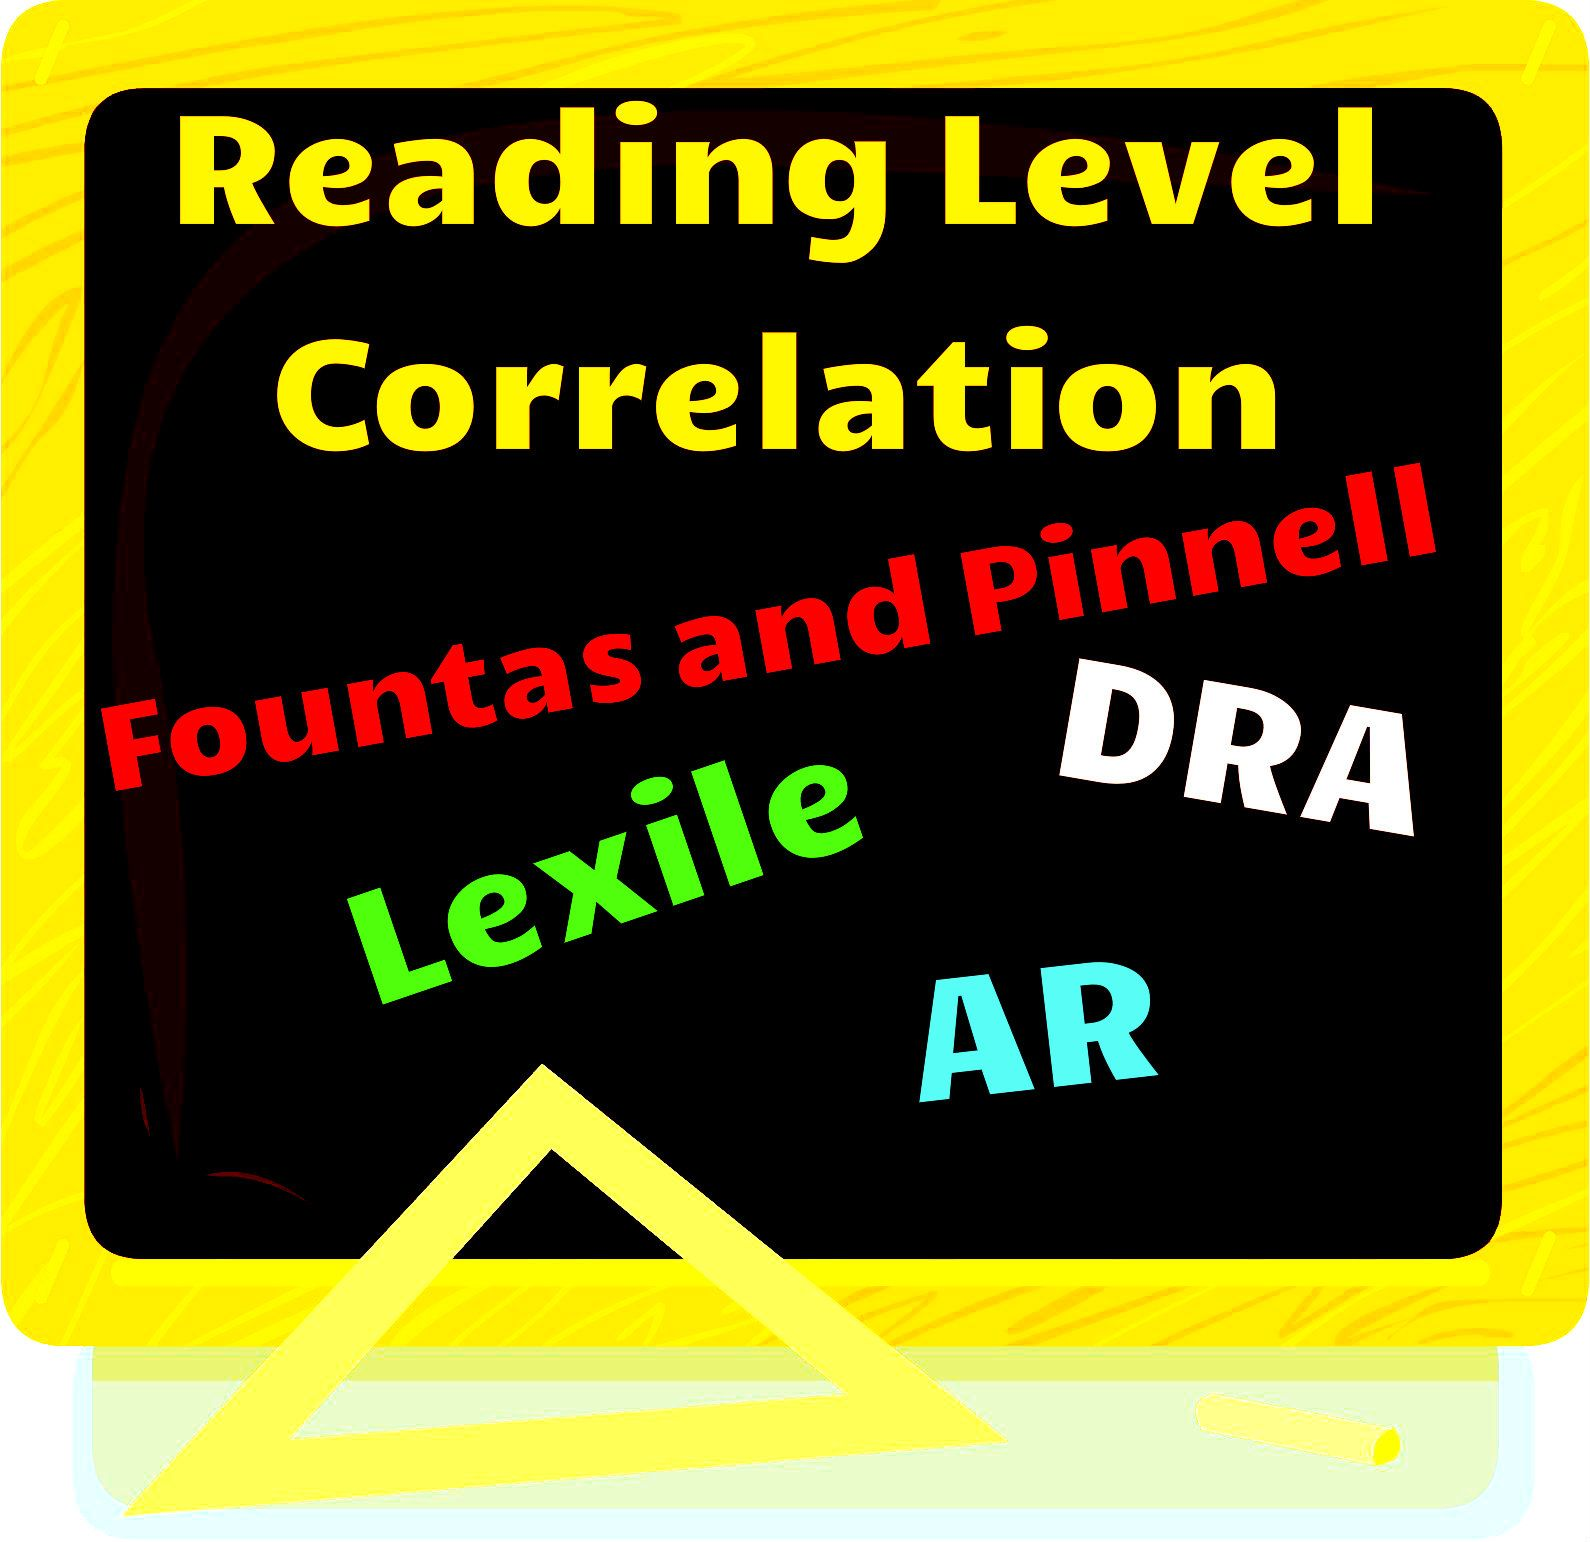 Free Reading Level Correlation Chart For Fontas And Pinnell Dra